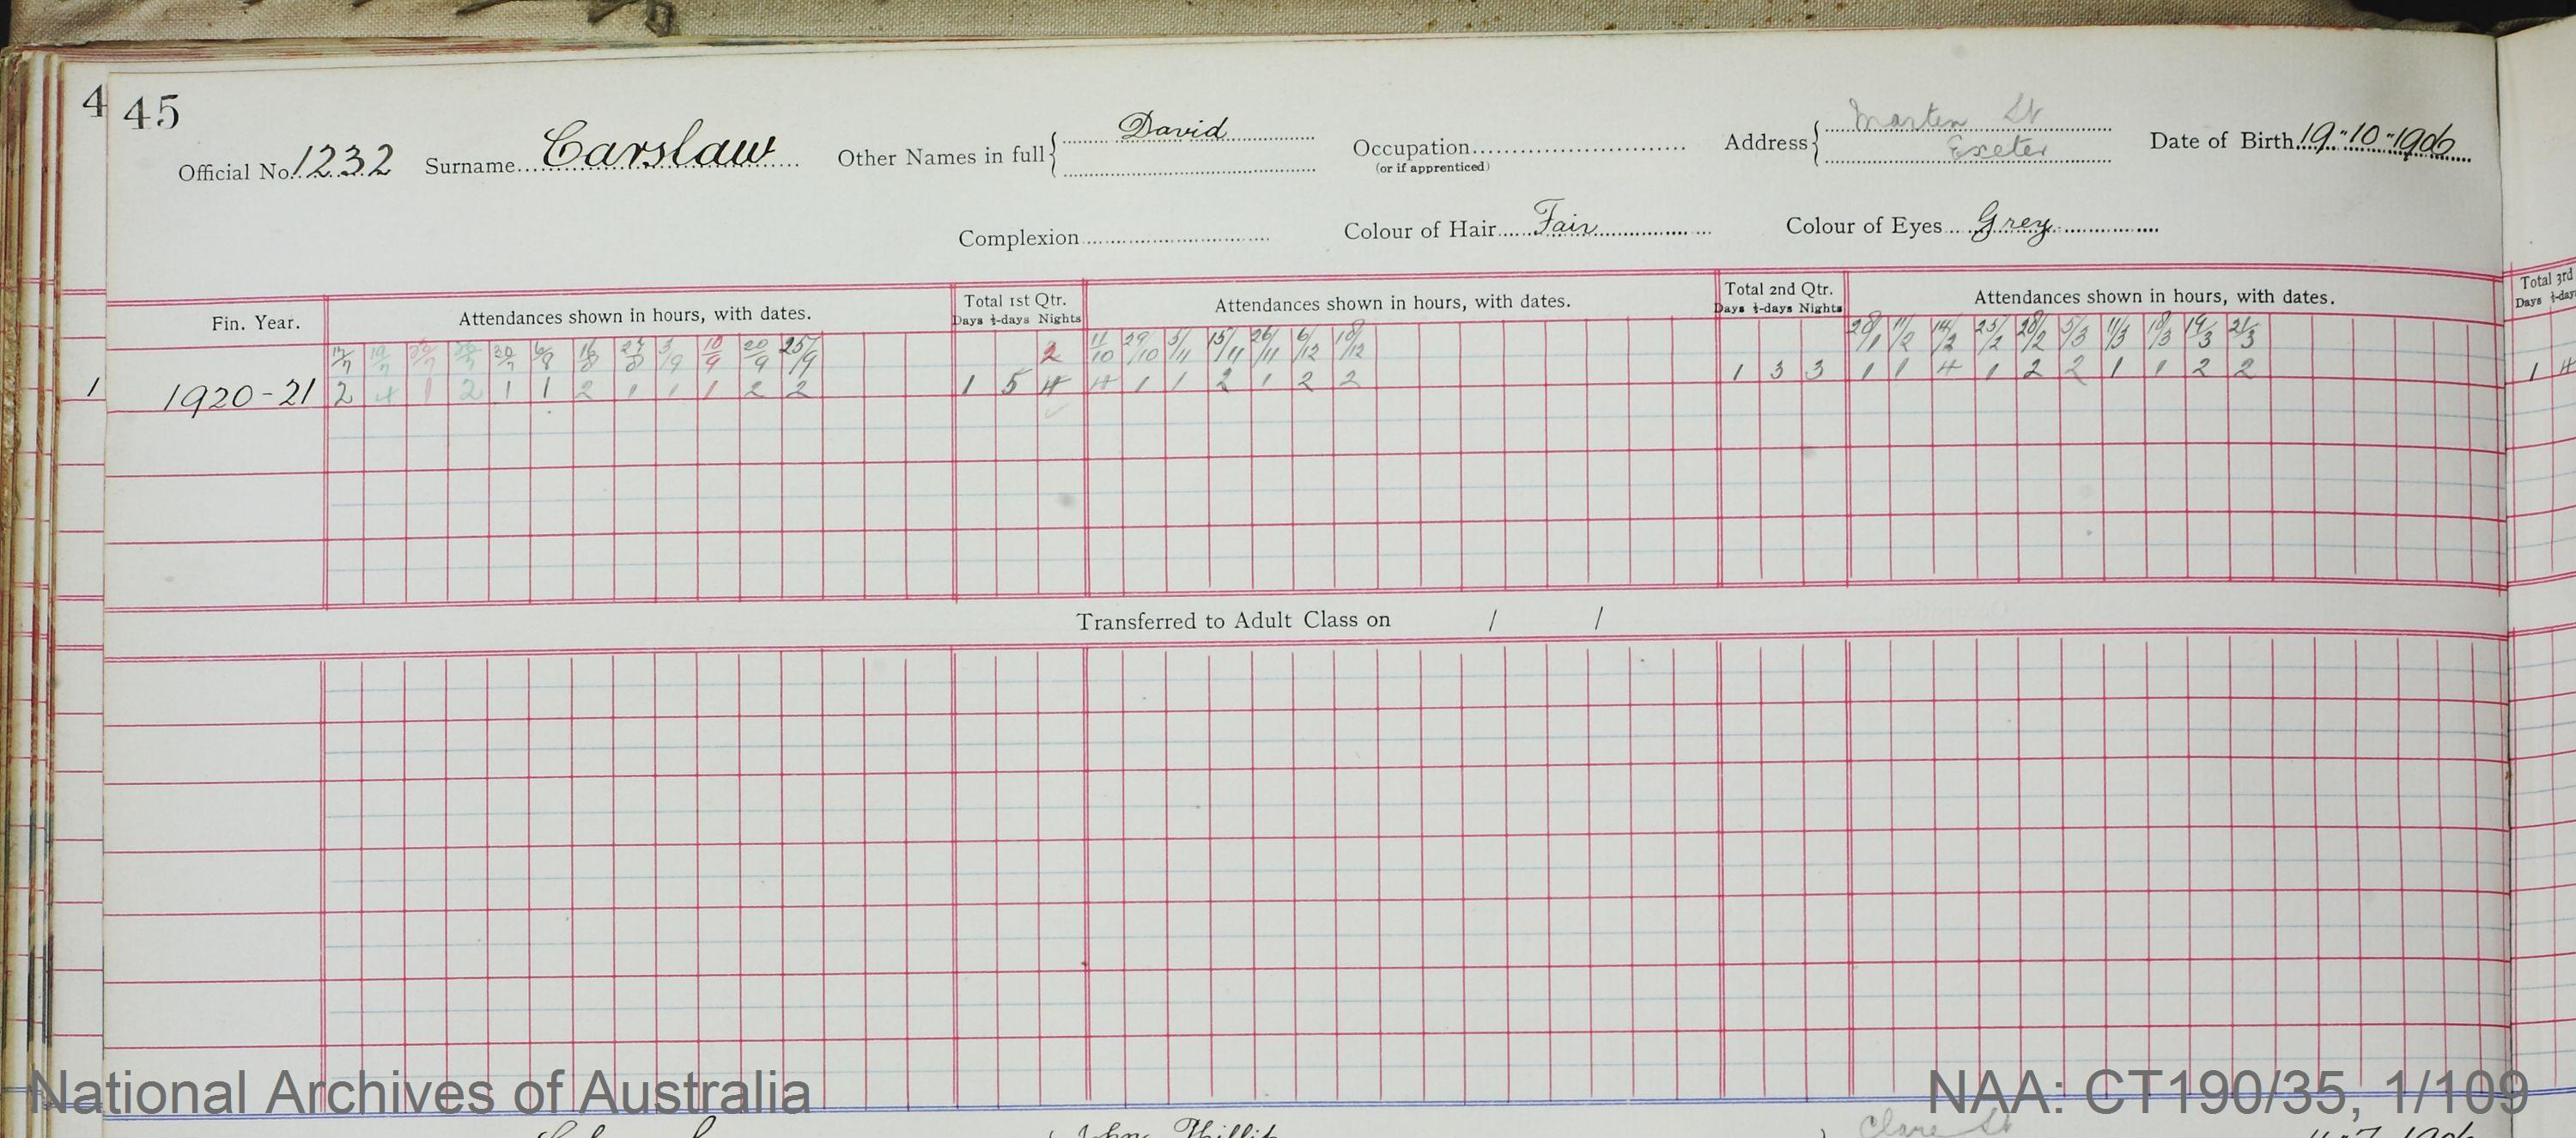 SURNAME - CARSLAW;  GIVEN NAME(S) - David;  OFFICIAL NUMBER - 1232;  DATE OF BIRTH - 19 October 1906;  PLACE OF BIRTH - [Unknown];  NEXT OF KIN - [Unknown];  SERVICE/STATION - Semaphore, South Australia;  REGISTRATION DATE - 8 January 1920